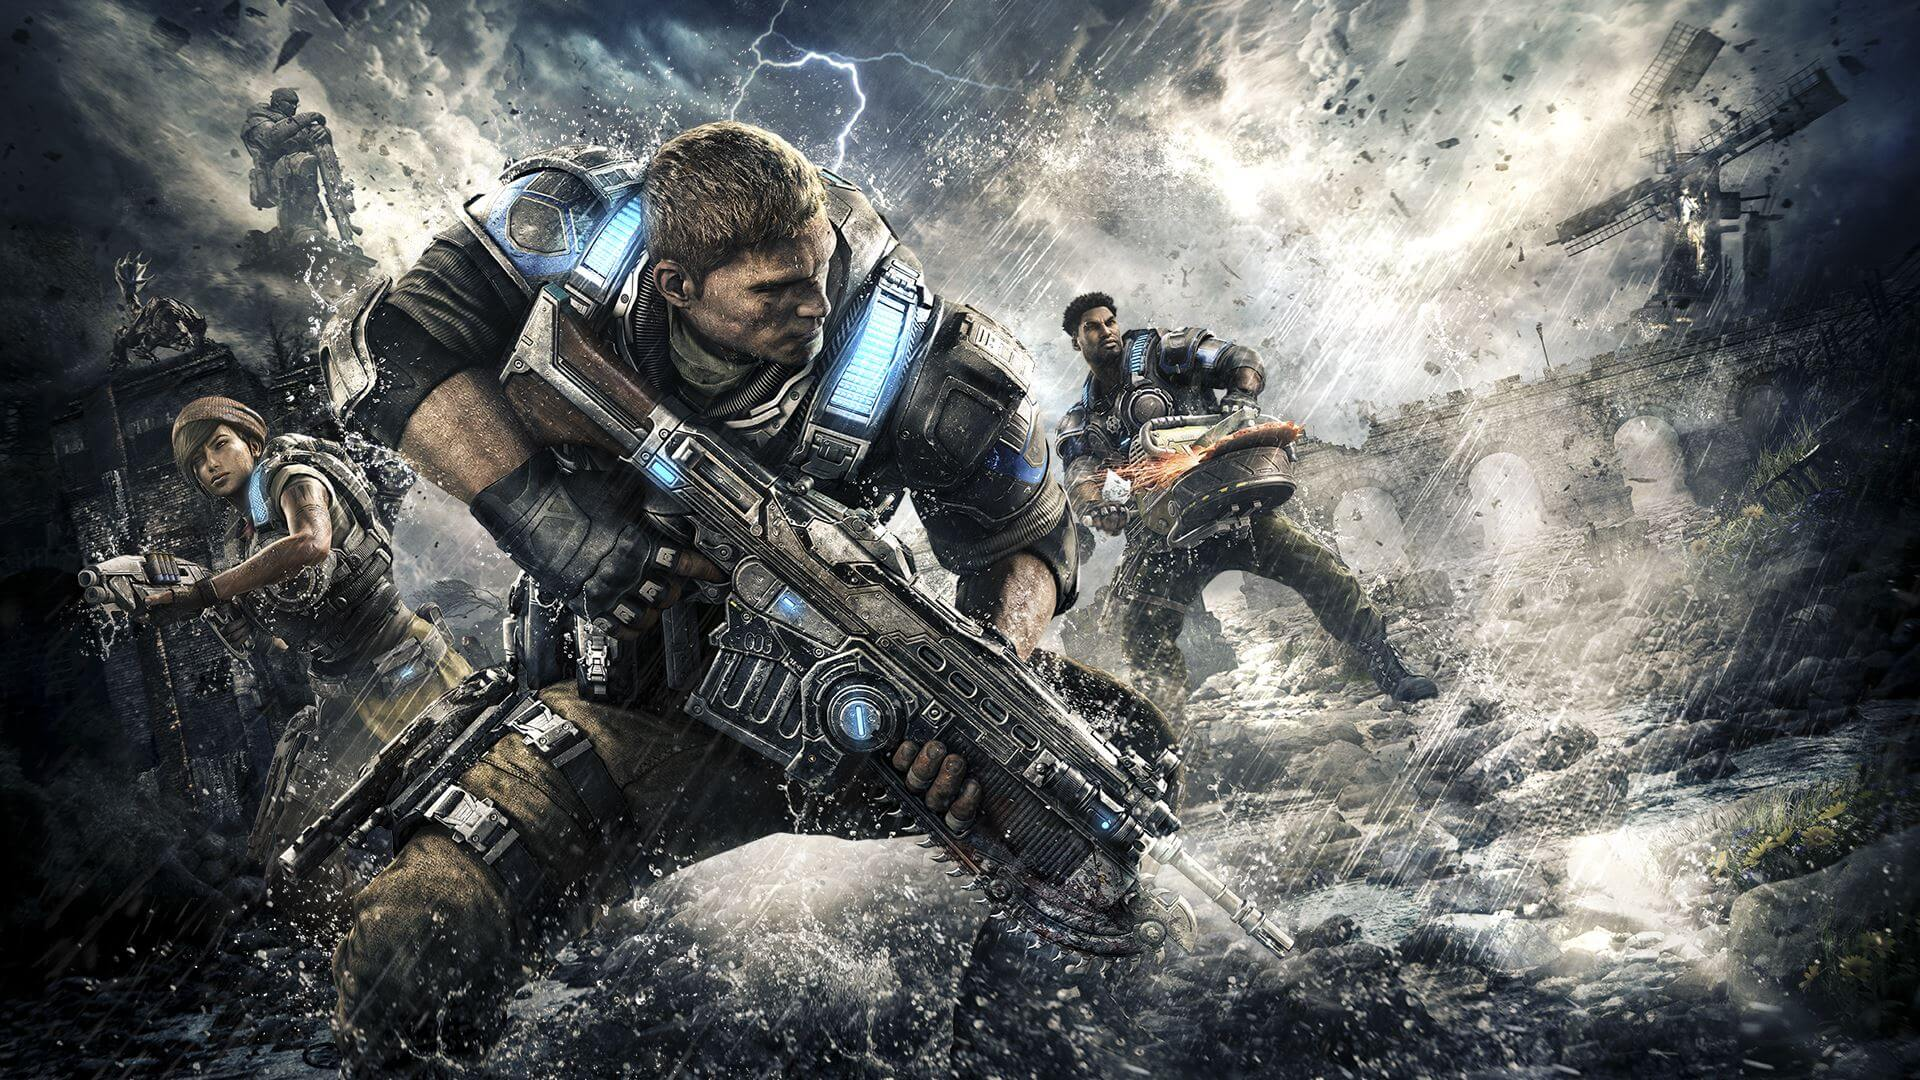 E3 2016: Gears of War 4 Demonstrates PC/Xbox One Crossplay